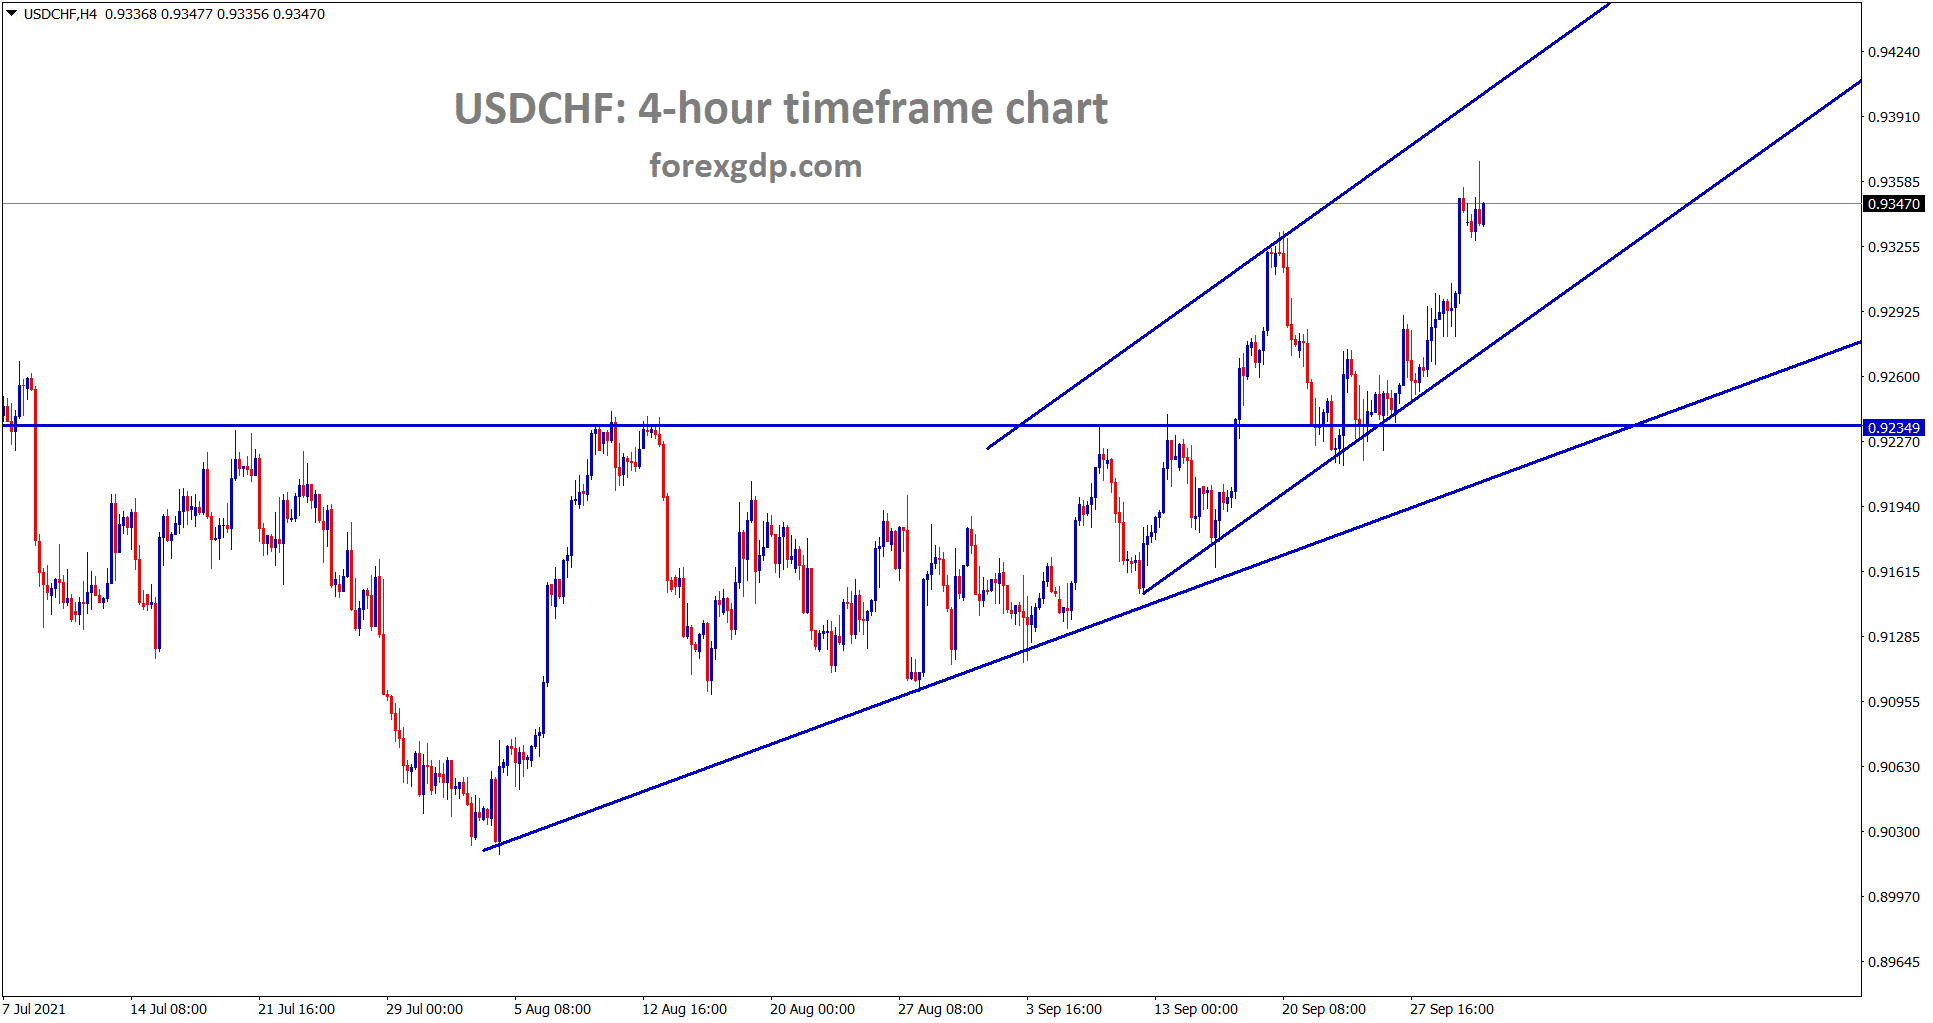 USDCHF is moving in an uptrend now forming higher highs and higher lows